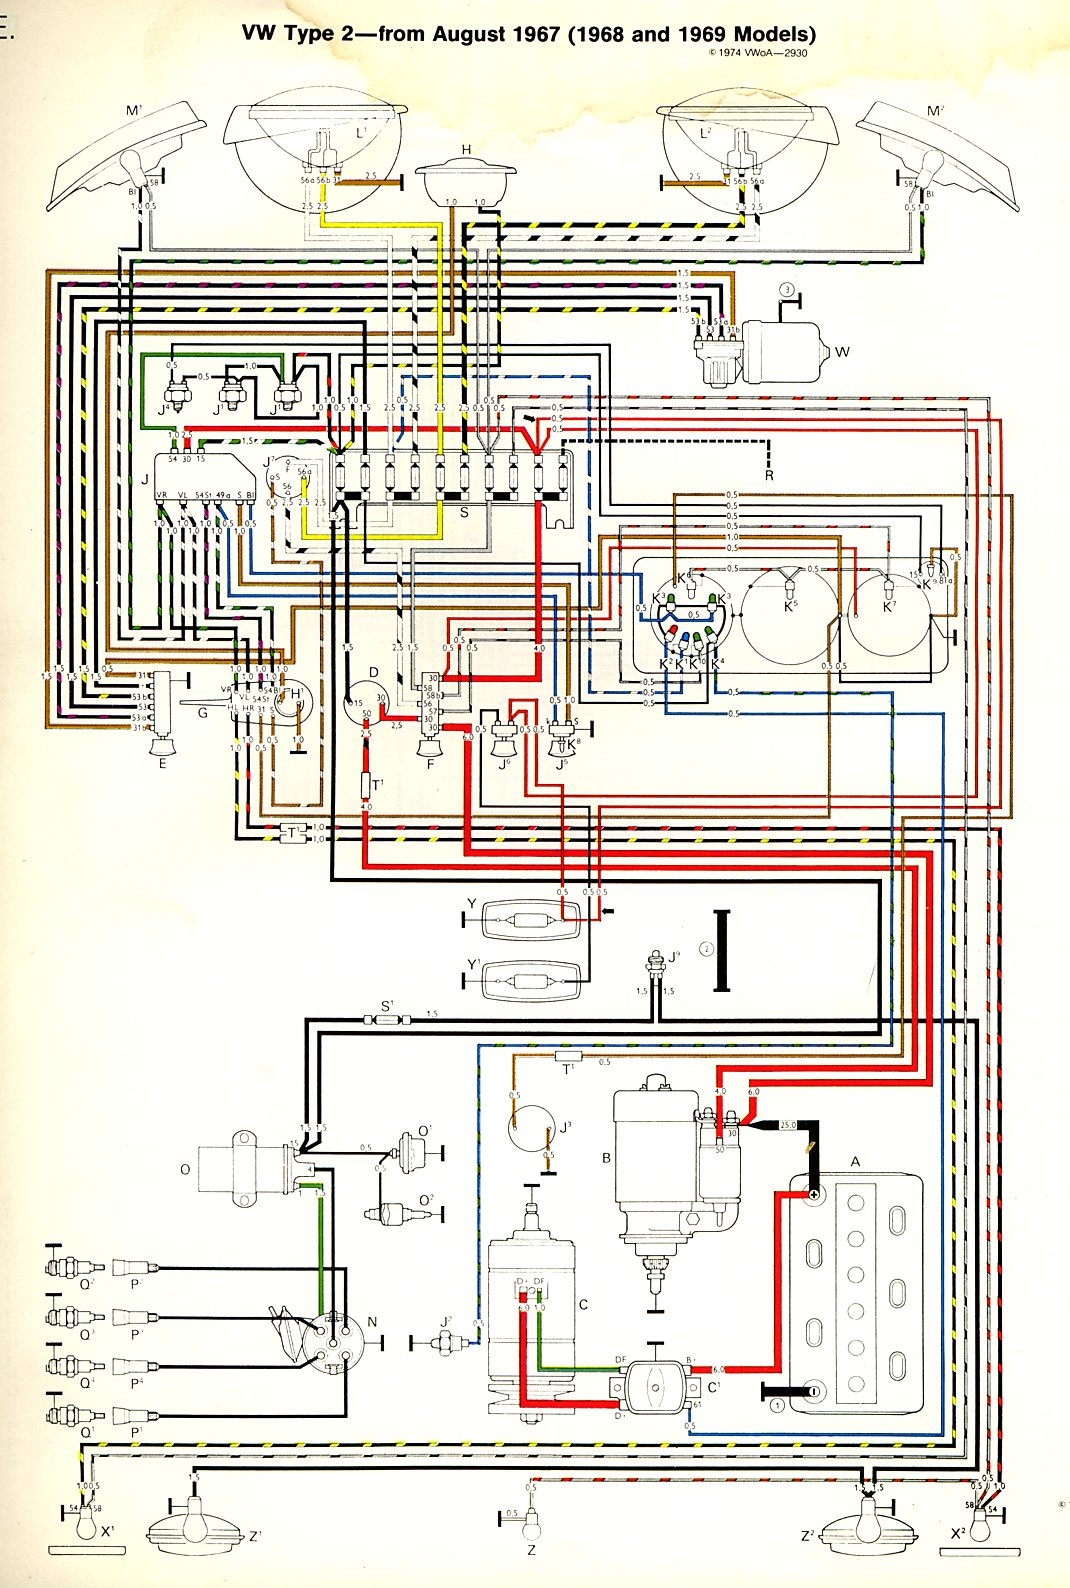 Saturn Sc1 Fuse Box Diagram Likewise 1972 Chevy Truck 4x4 Conversion